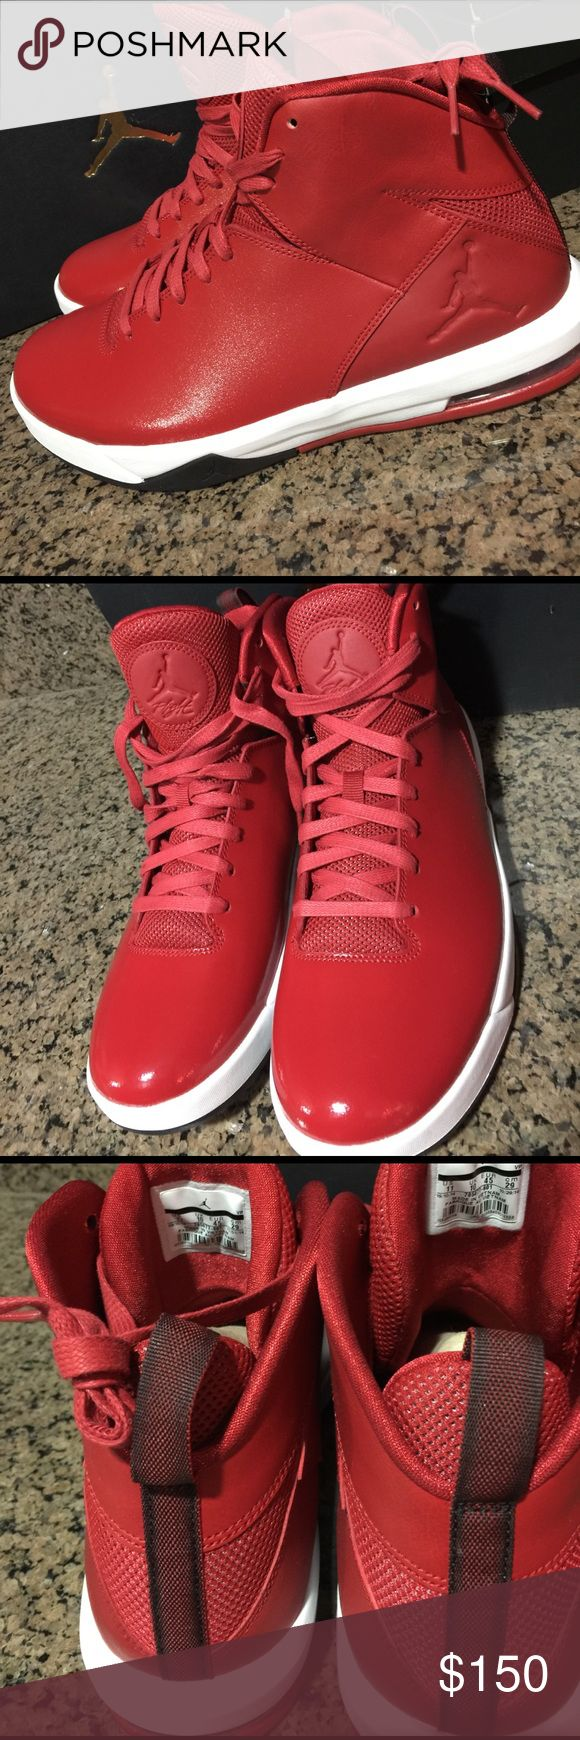 New Jordan Air Imminent - Red - Size 11 Brand new. PRICE IS FIRM. Have a Jordan box but it didn't came in original box with sticker of the style, box must have gotten mixed up. I have same in black listed as well. Purchased as gift before traveling overseas but unable to travel now and too late to return Jordan Shoes